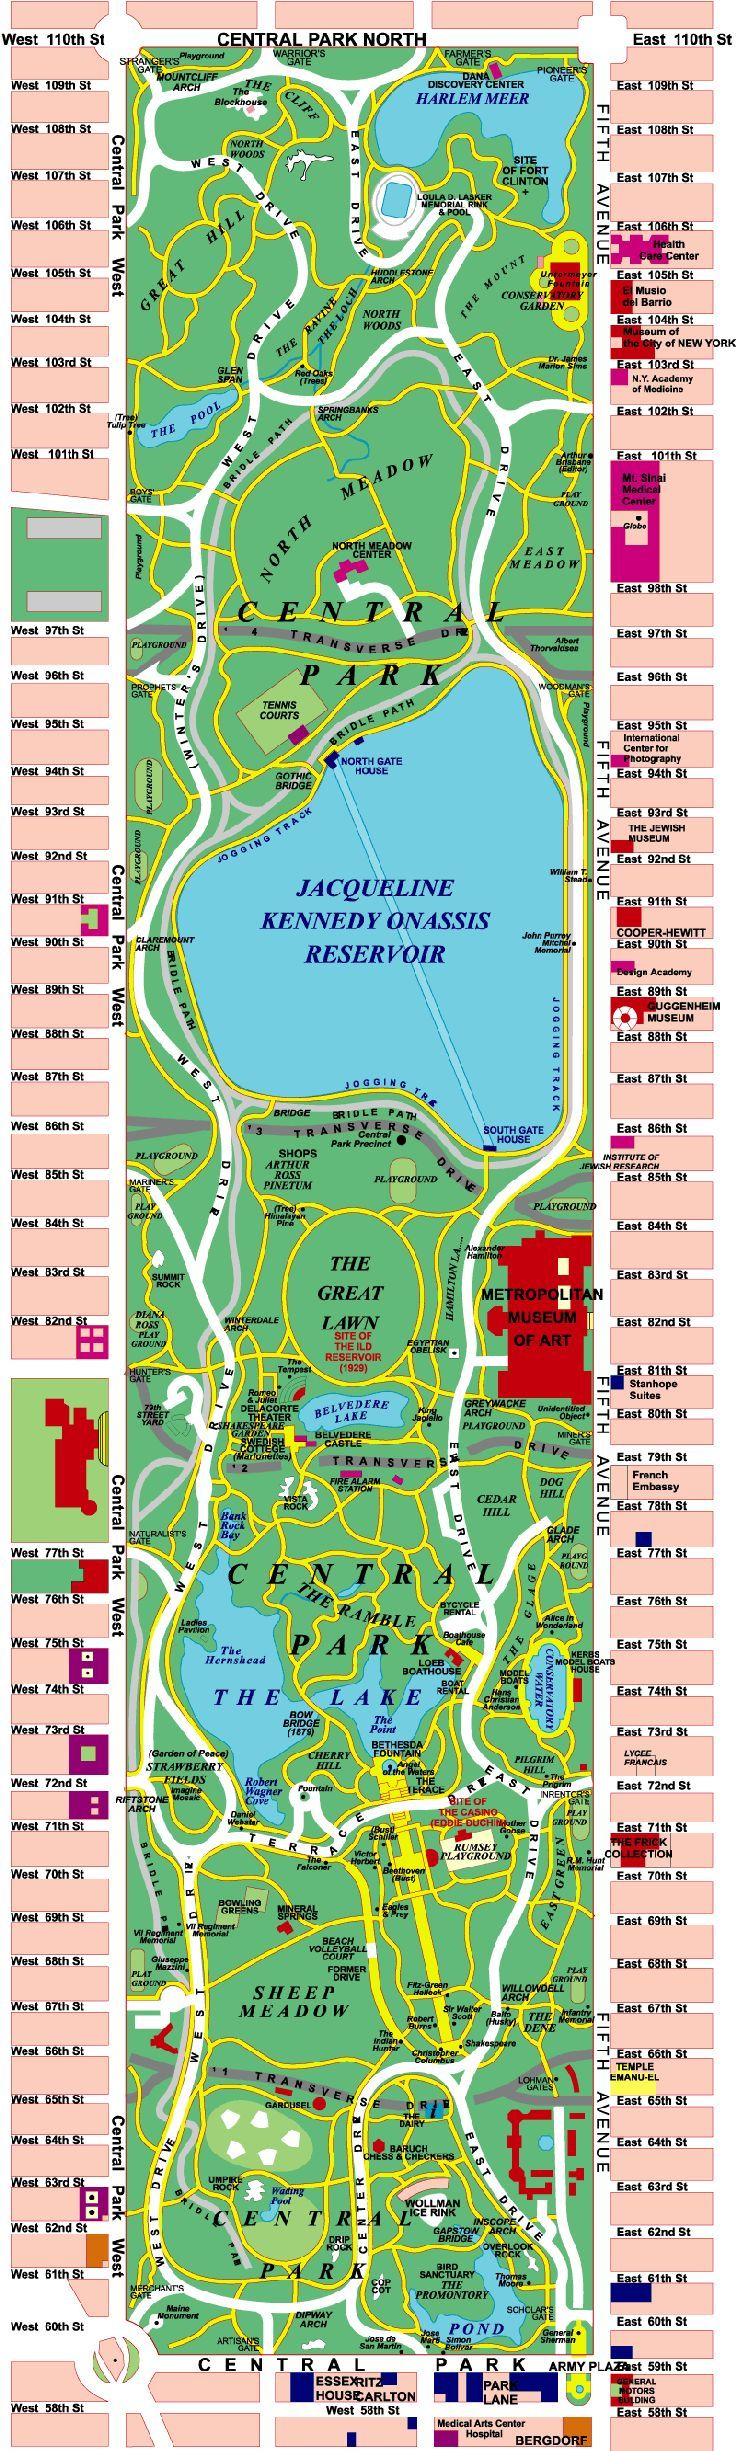 Central Park Map is a must have for nyc wedding hotel goodie bags